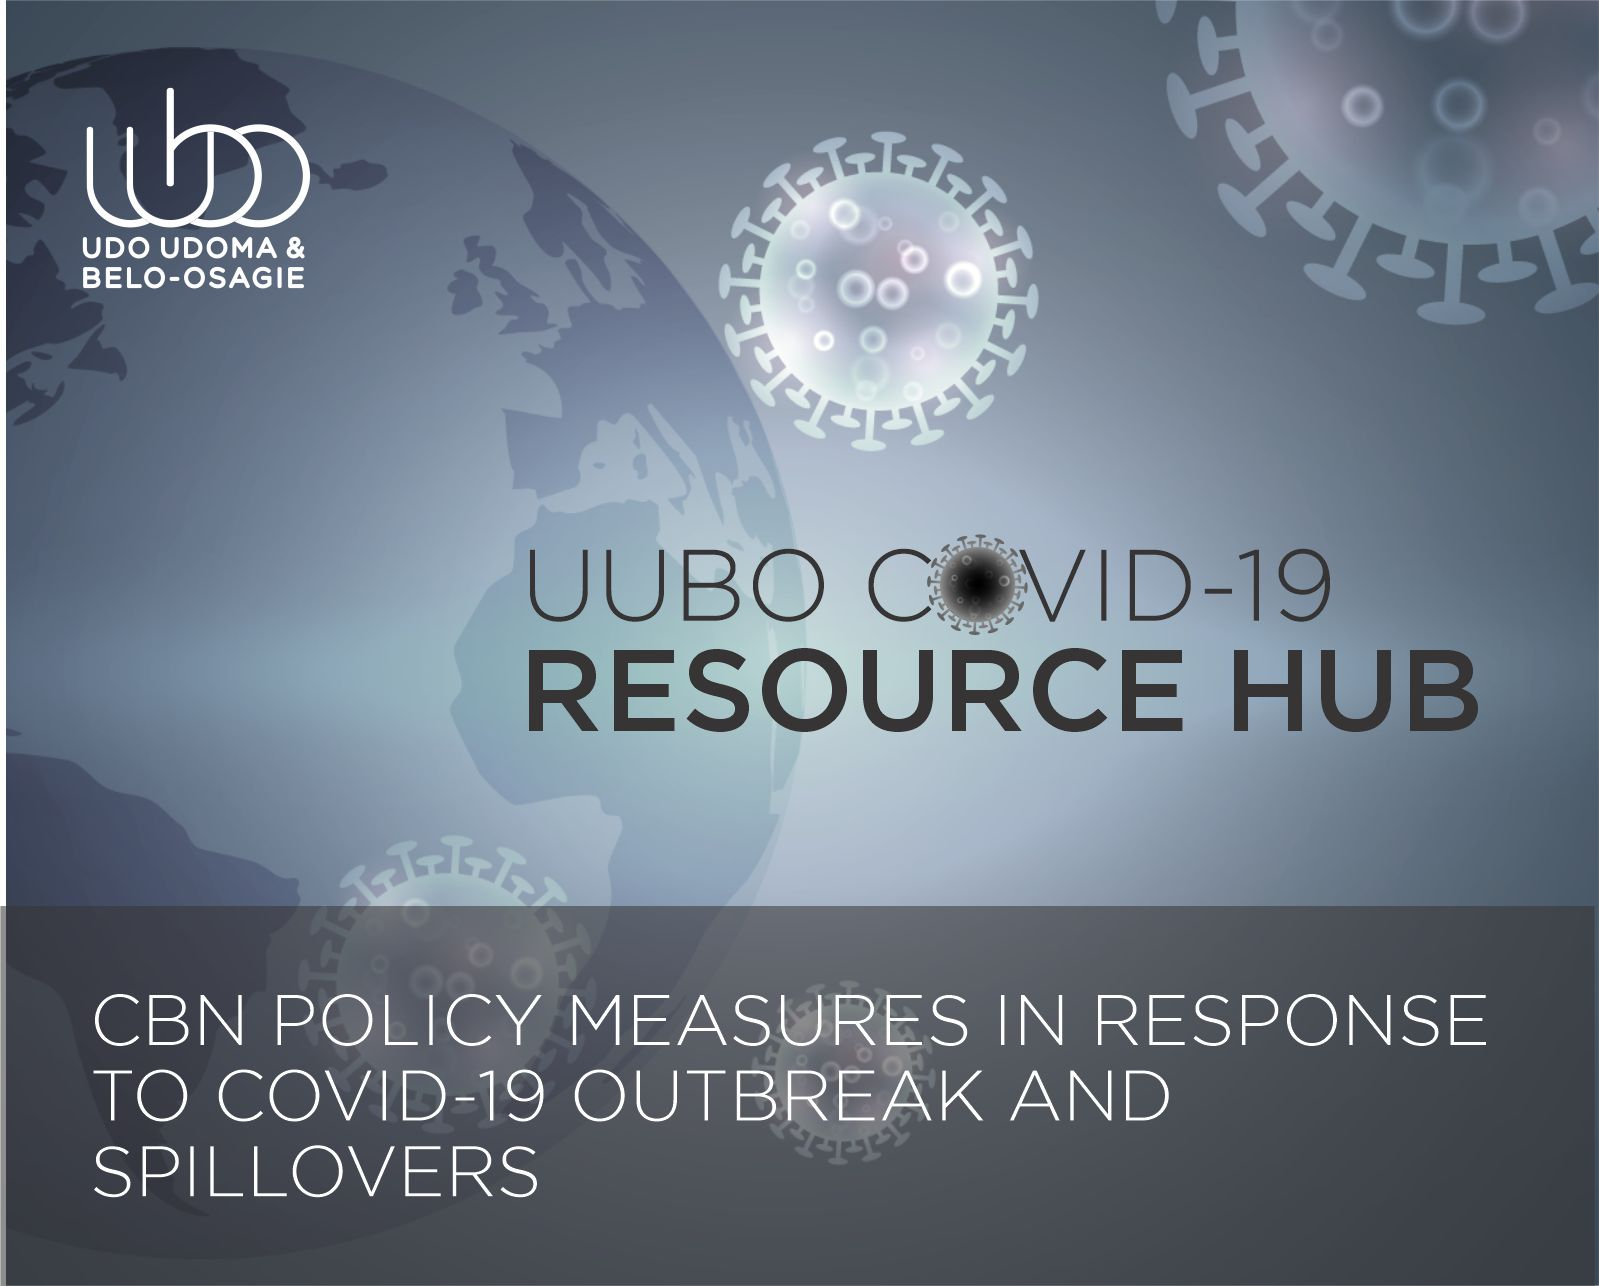 CBN POLICY MEASURES IN RESPONSE TO COVID-19 OUTBREAK AND SPILLOVERS